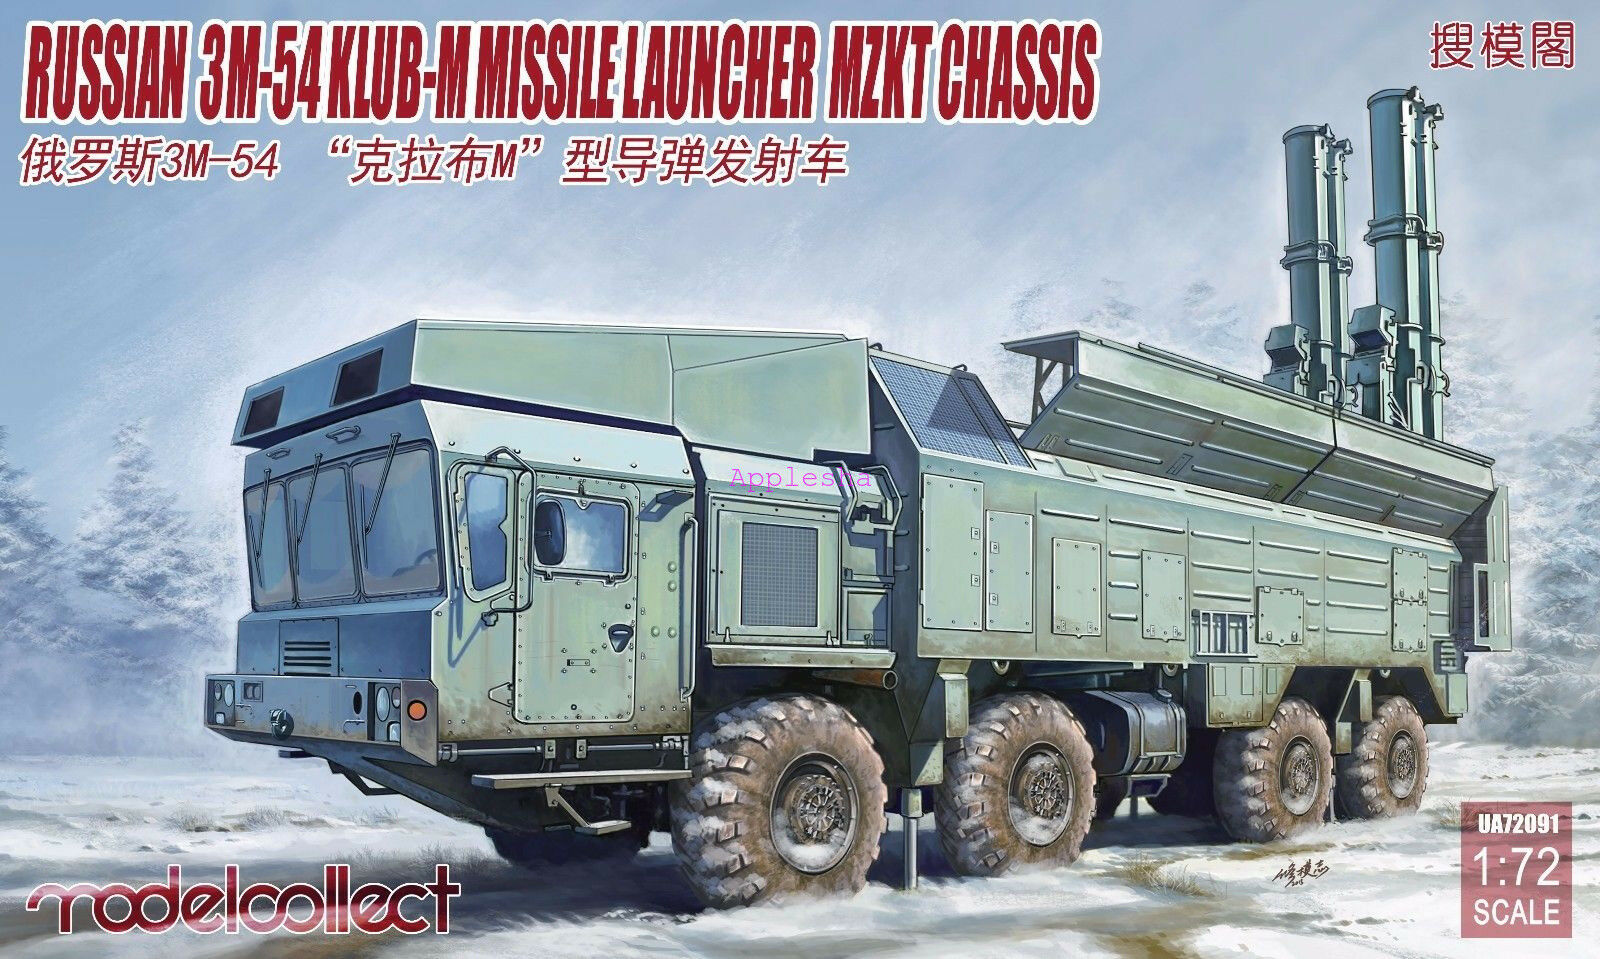 Model Collect UA72091 1 72 Russian 3M-54 Klub-M MissIle Launcher MZKT Chassis